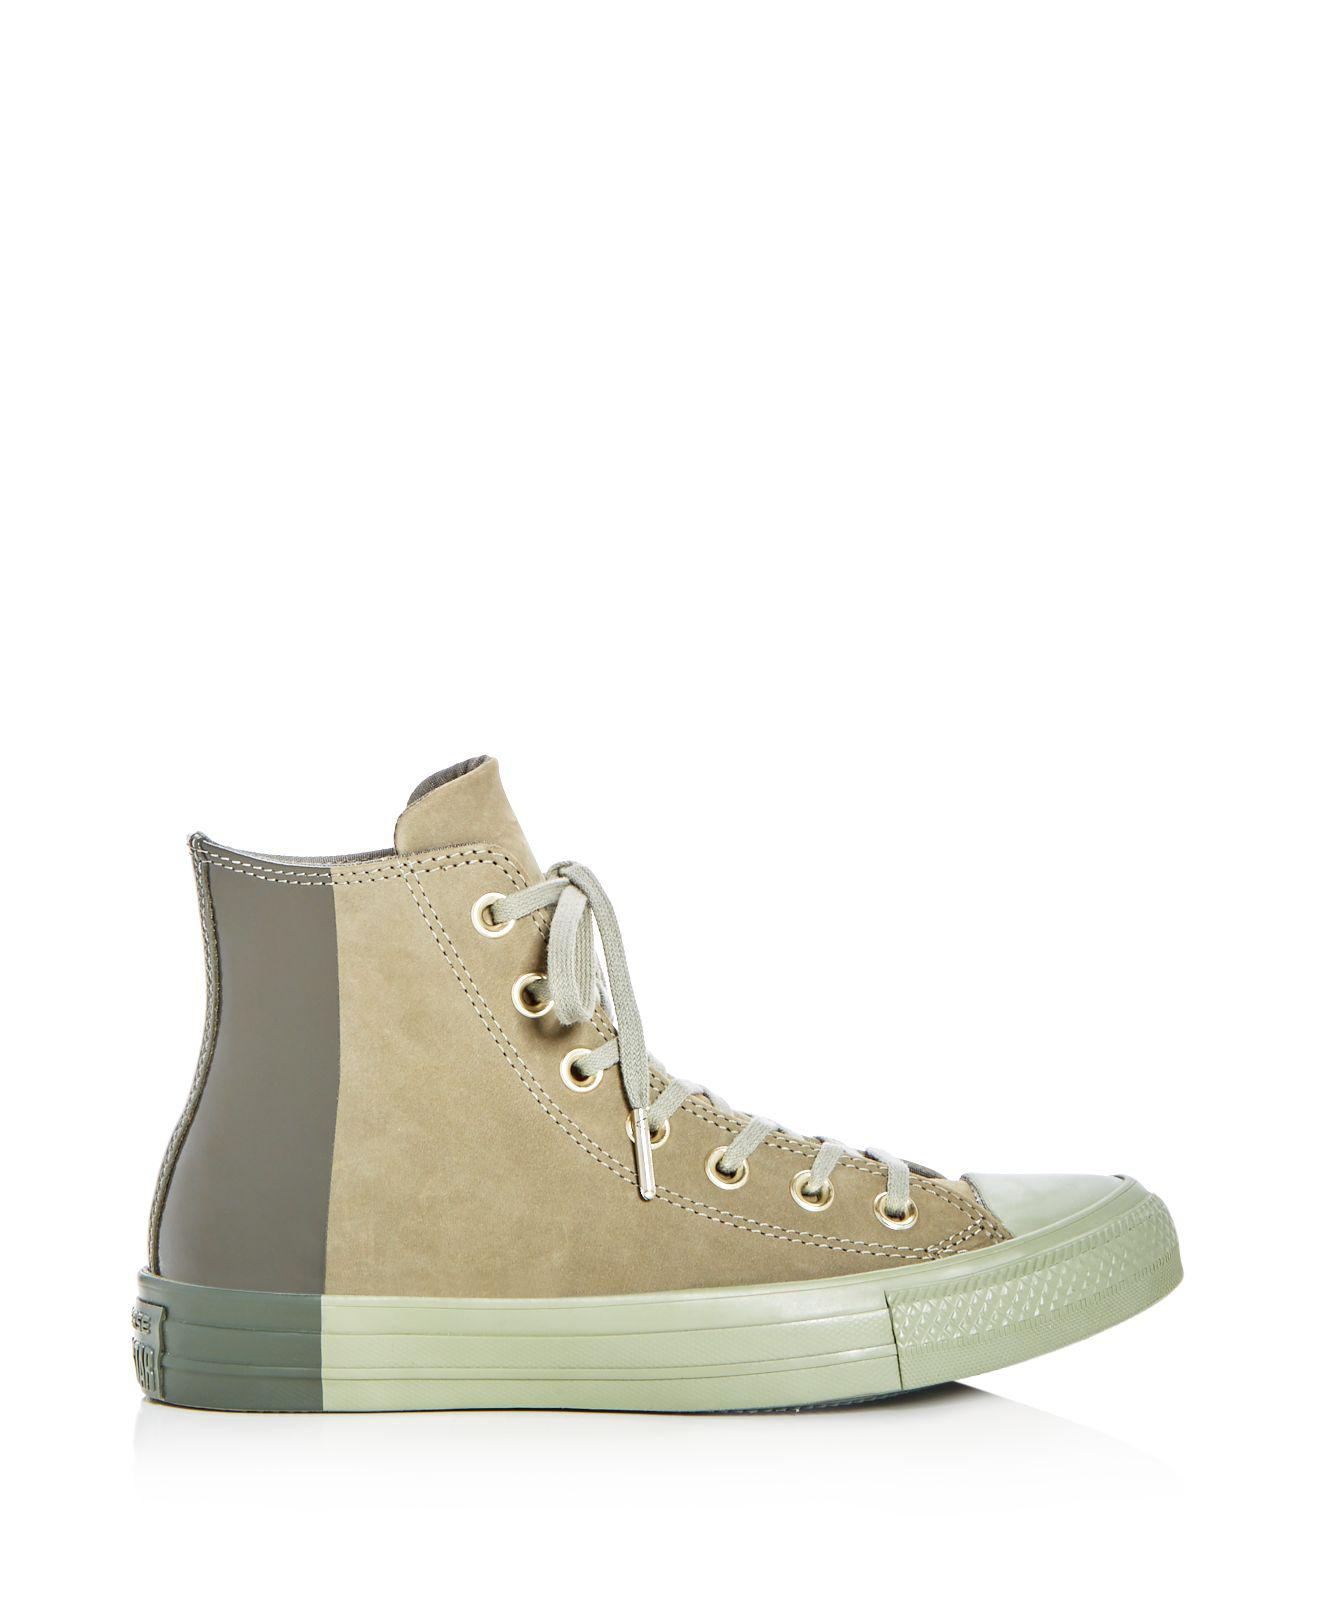 Converse Women's Chuck Taylor All Star Tonal Nubuck Leather High Top Sneakers 2i25N